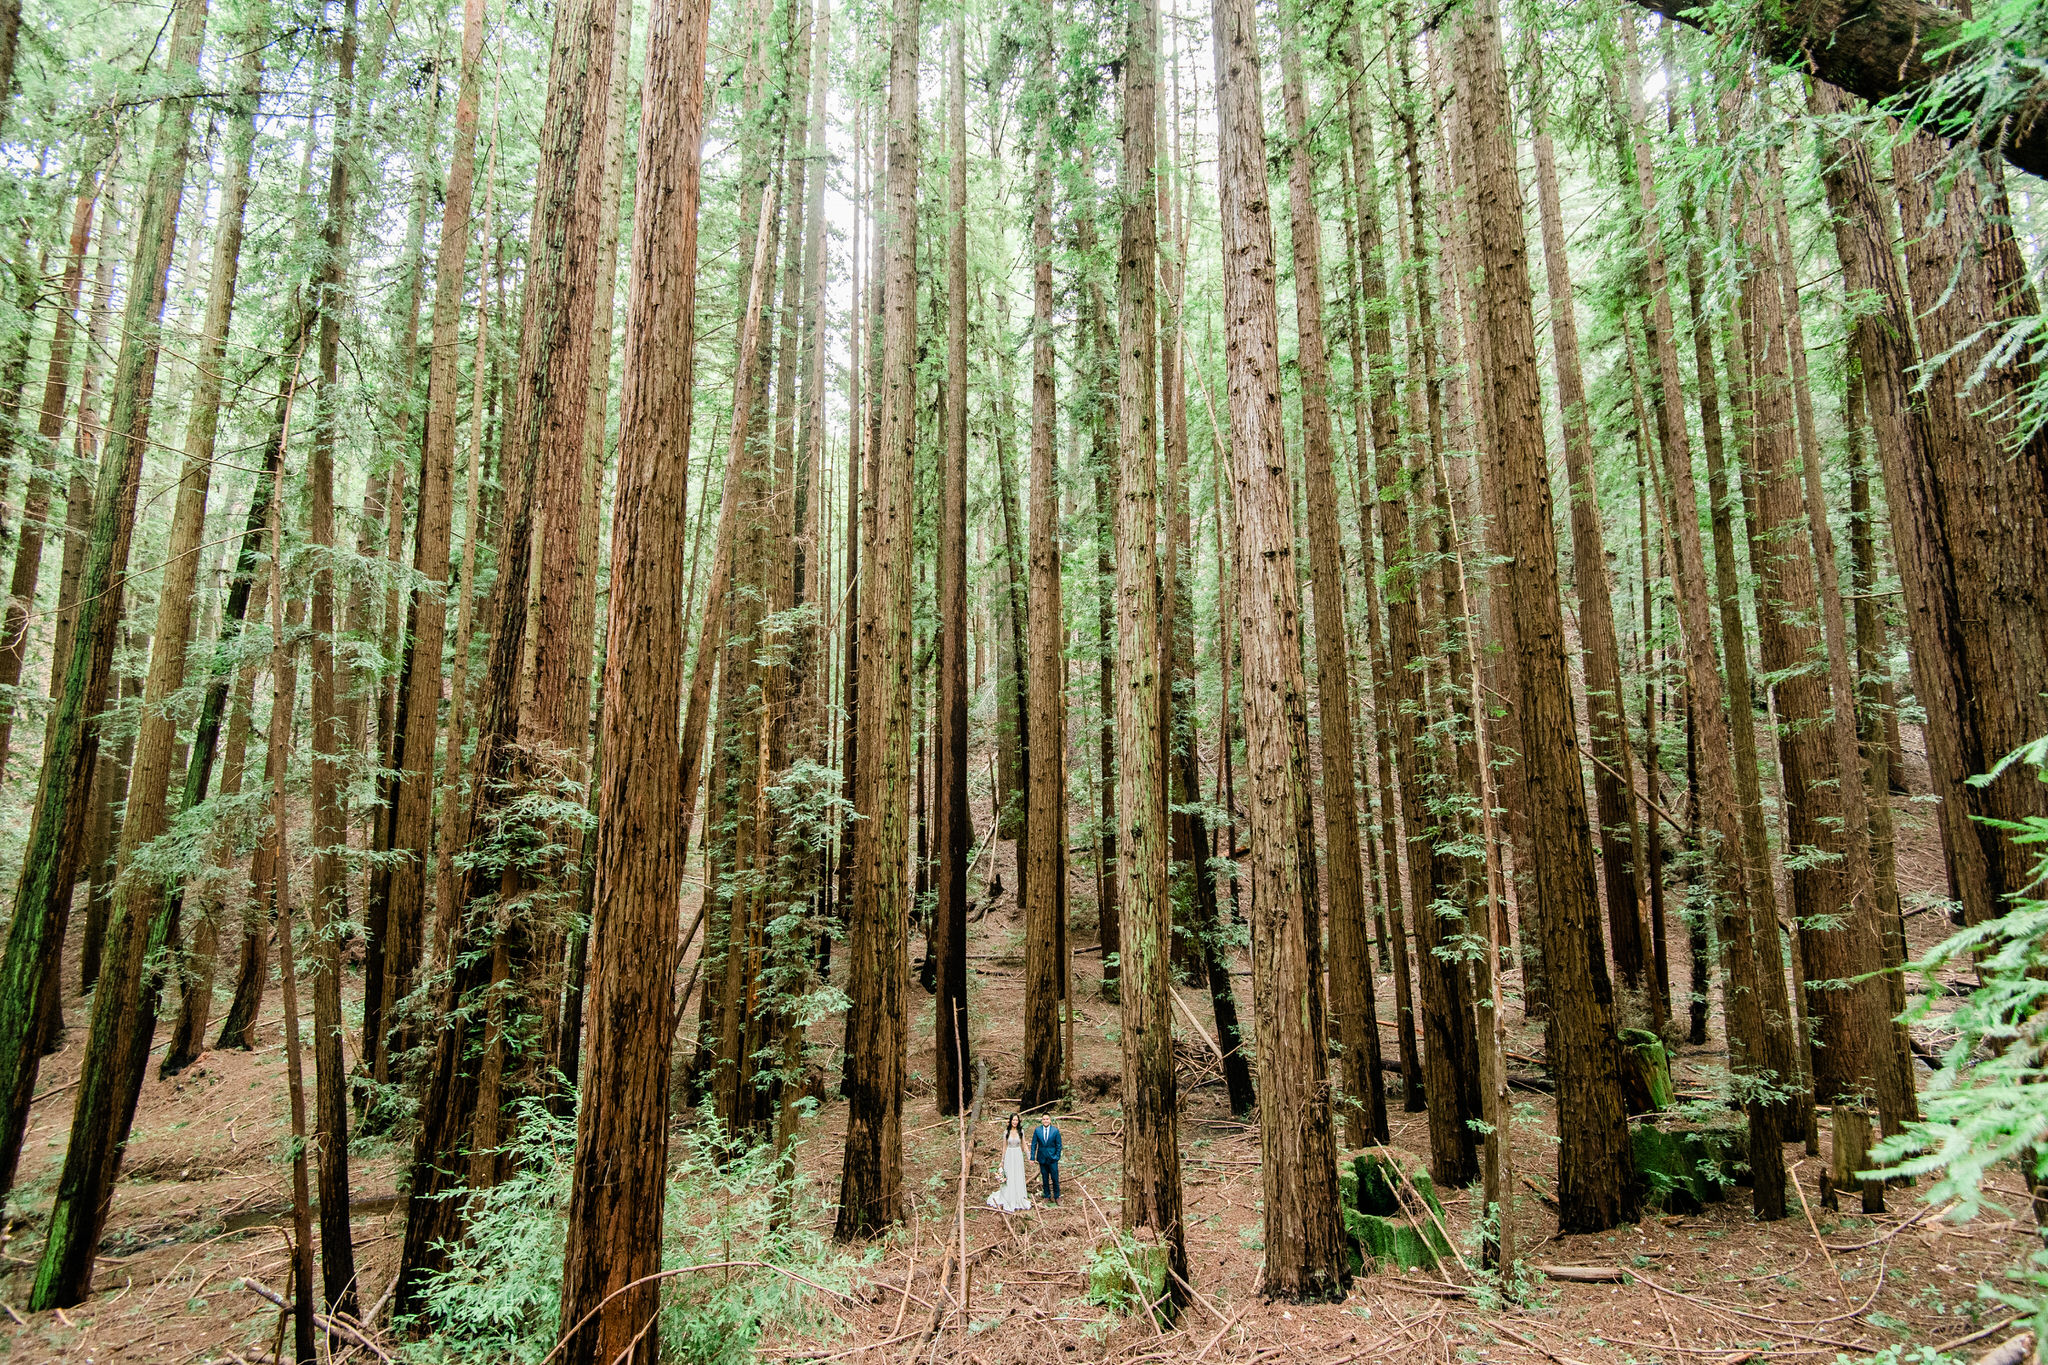 Bride and Groom standing in the middle of sequoia trees in California